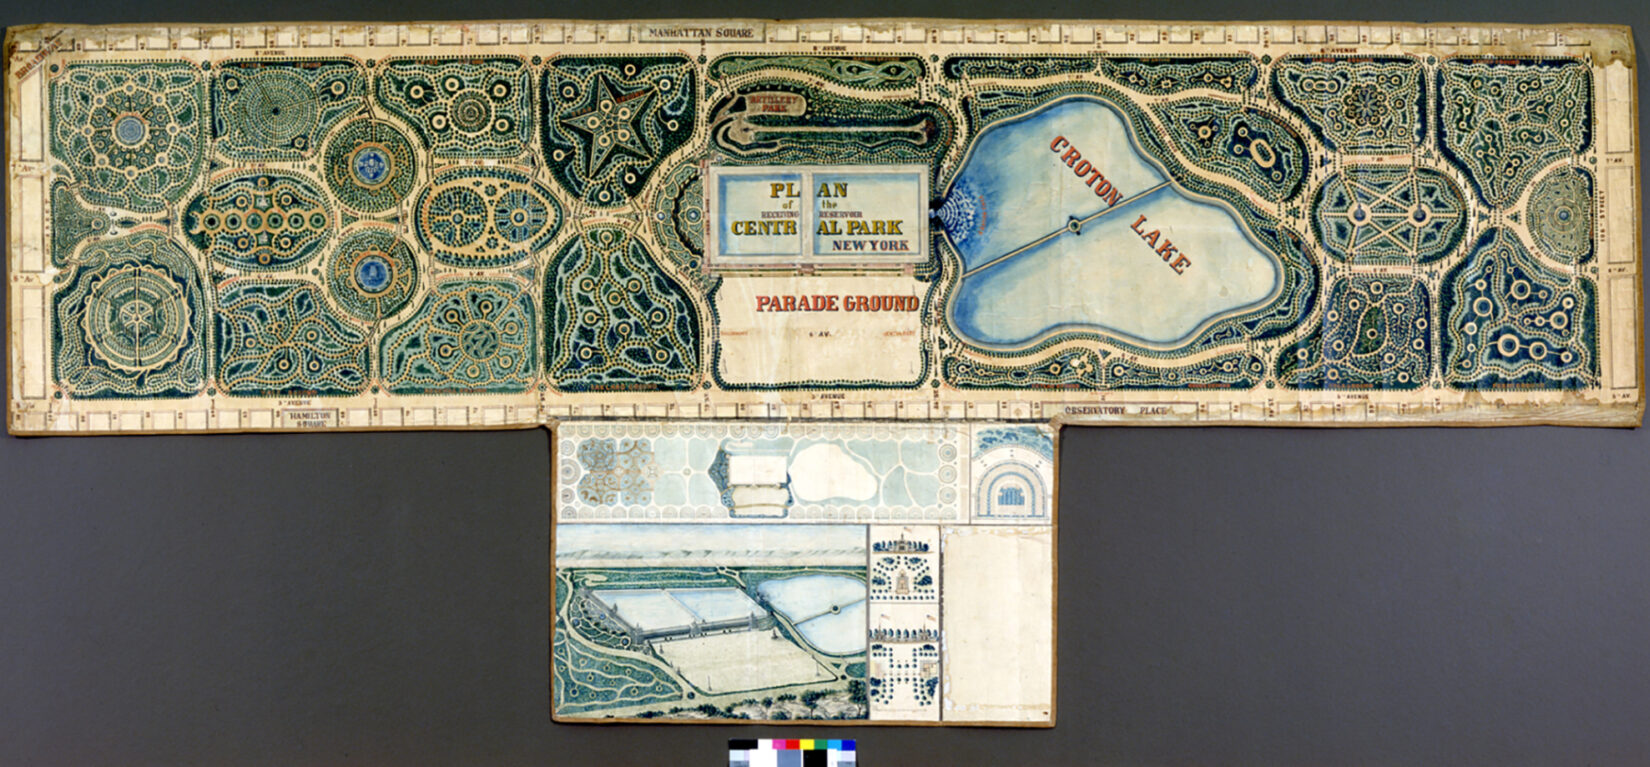 """An early plan for Central Park shows a collection of manicured gardens, with the Reservoir labeled """"Croton Lake."""""""